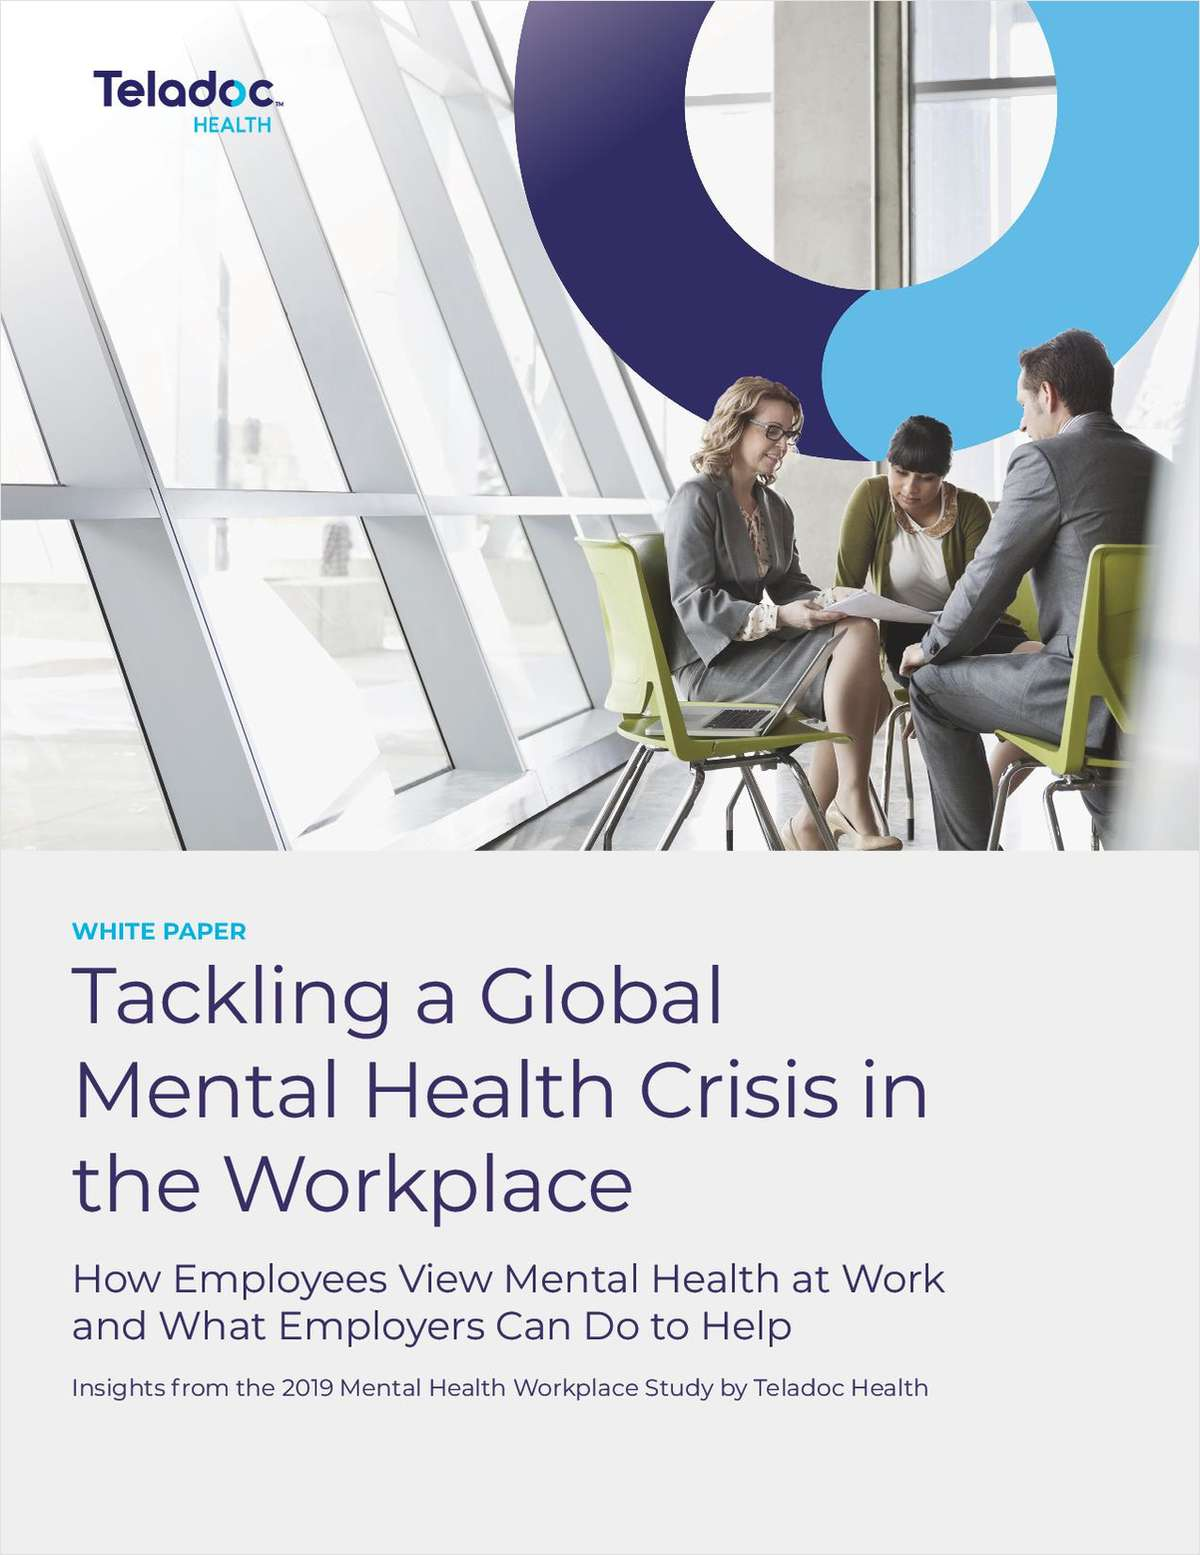 Tackling a Global Mental Health Crisis in the Workplace